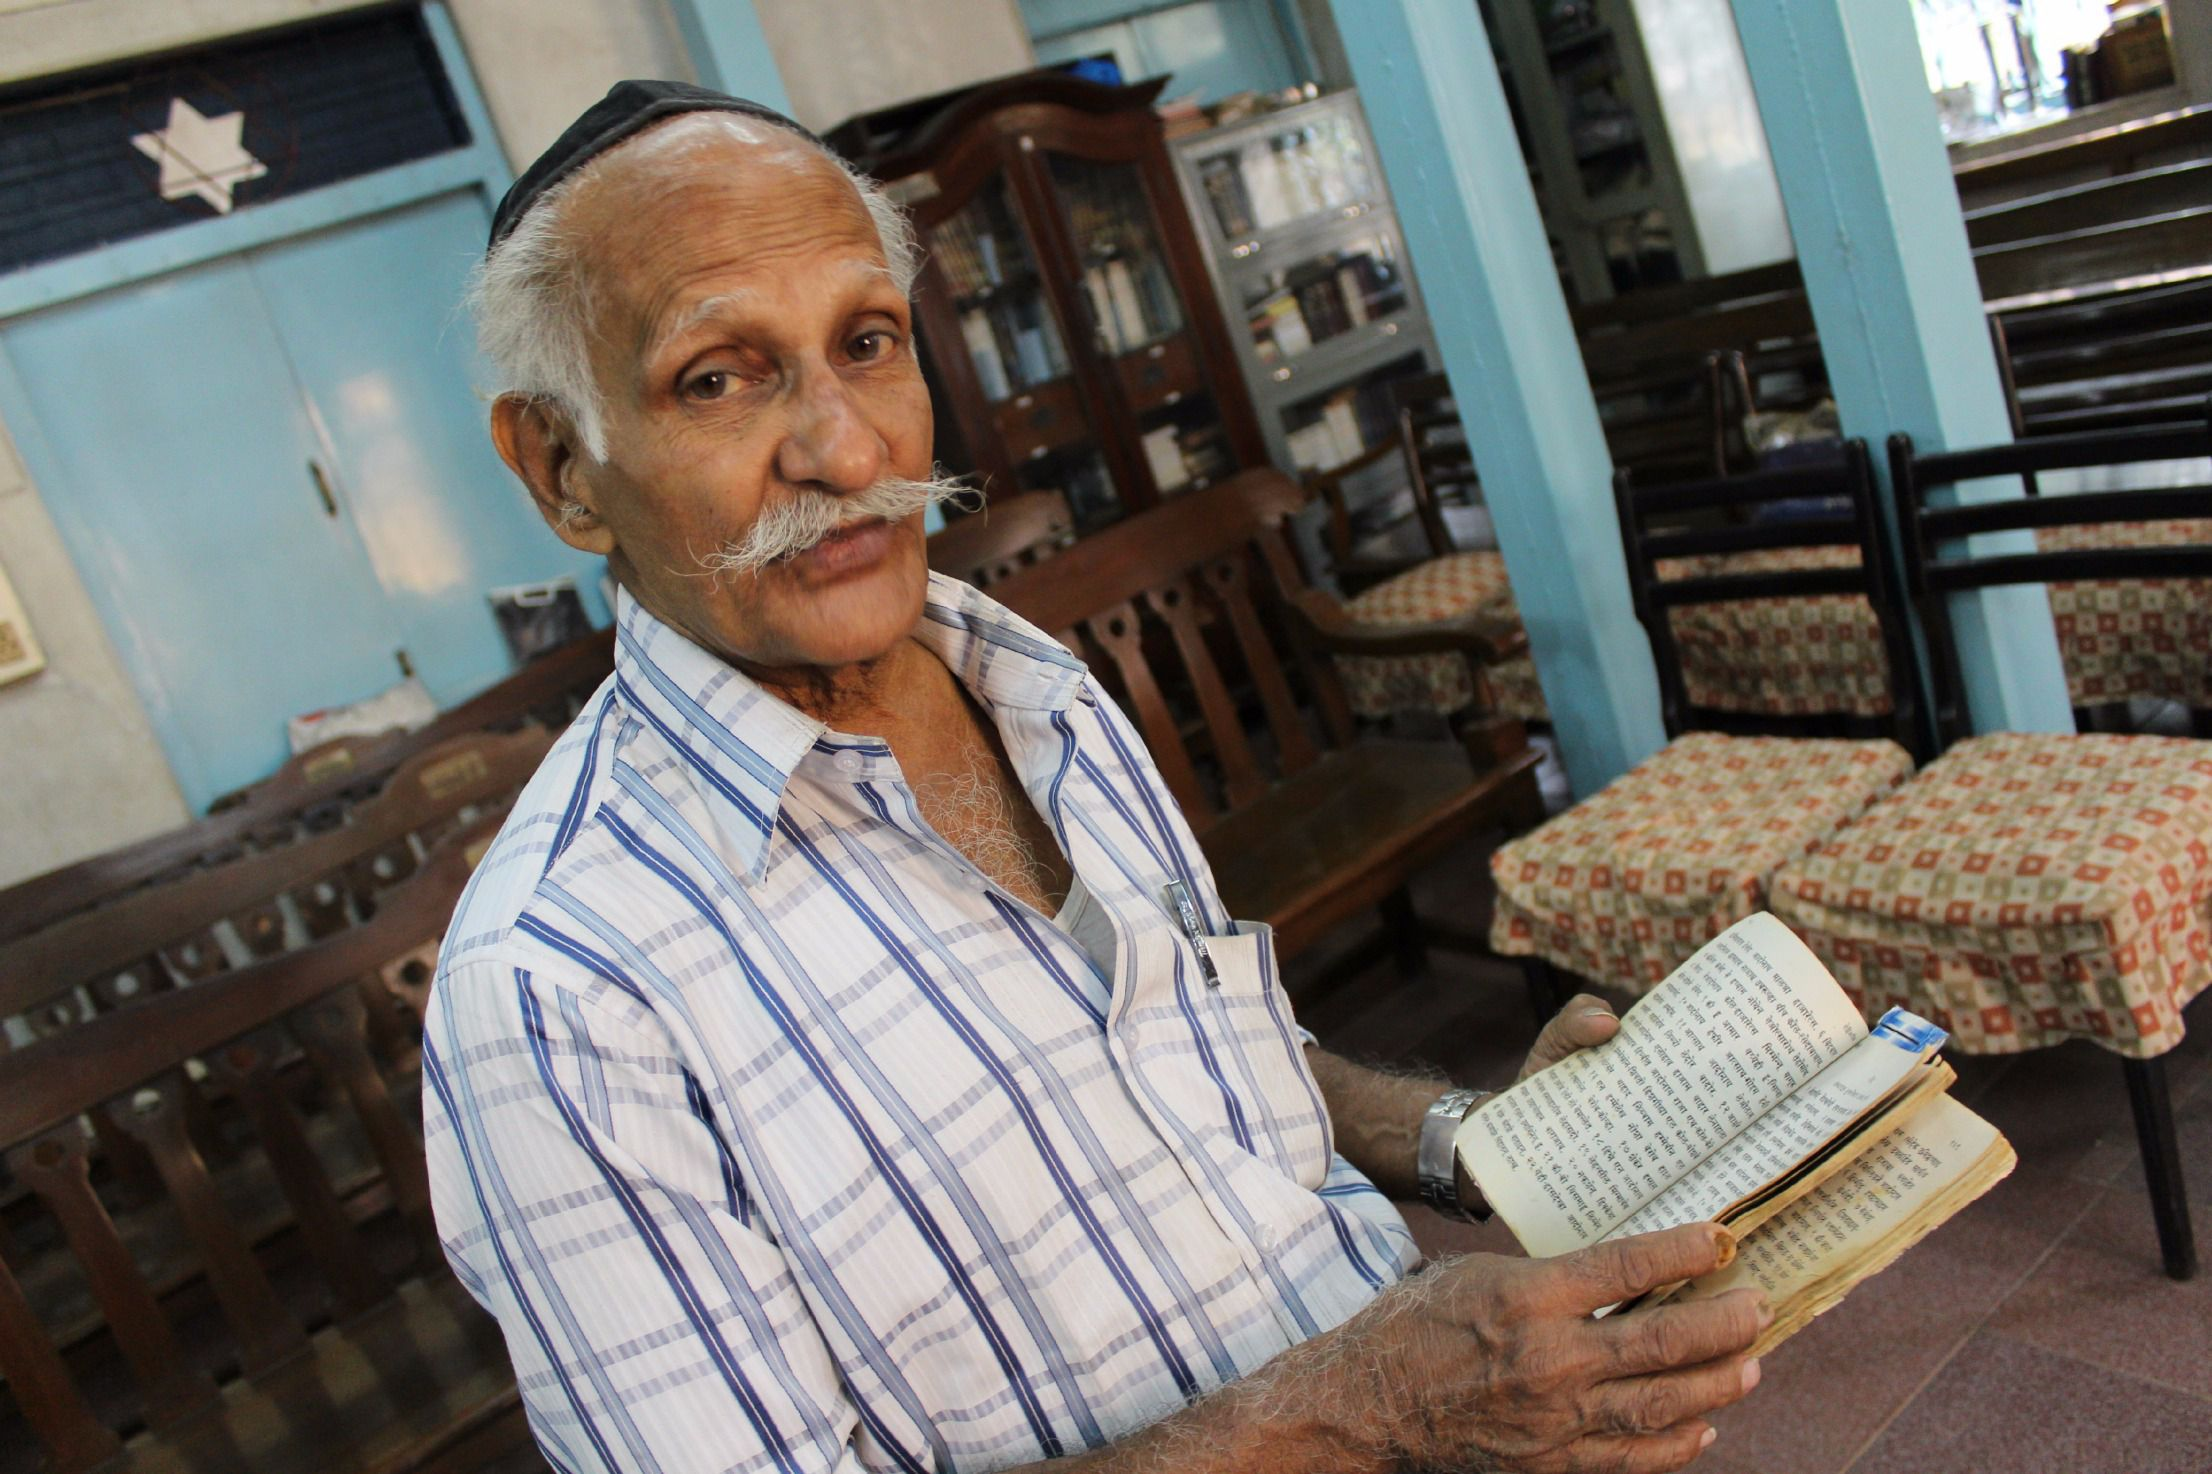 People of the Book: Solomon Penkar, the caretaker of Tiferet Israel synagogue, pages through a Psalms book in Marathi, one of India's official languages.